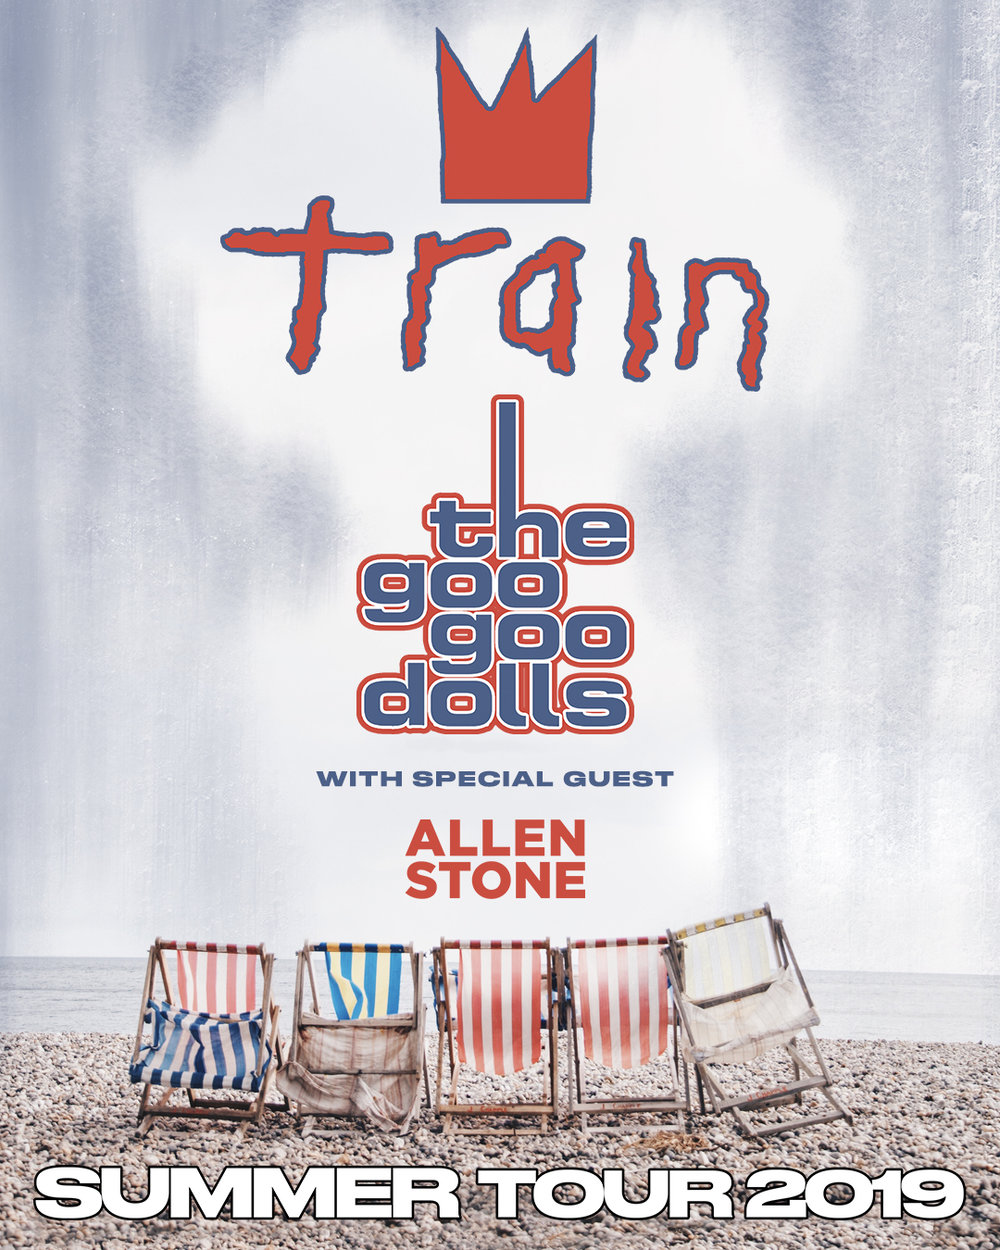 Train_GooGooDolls_2019_AS_COL2a - instagram.jpg